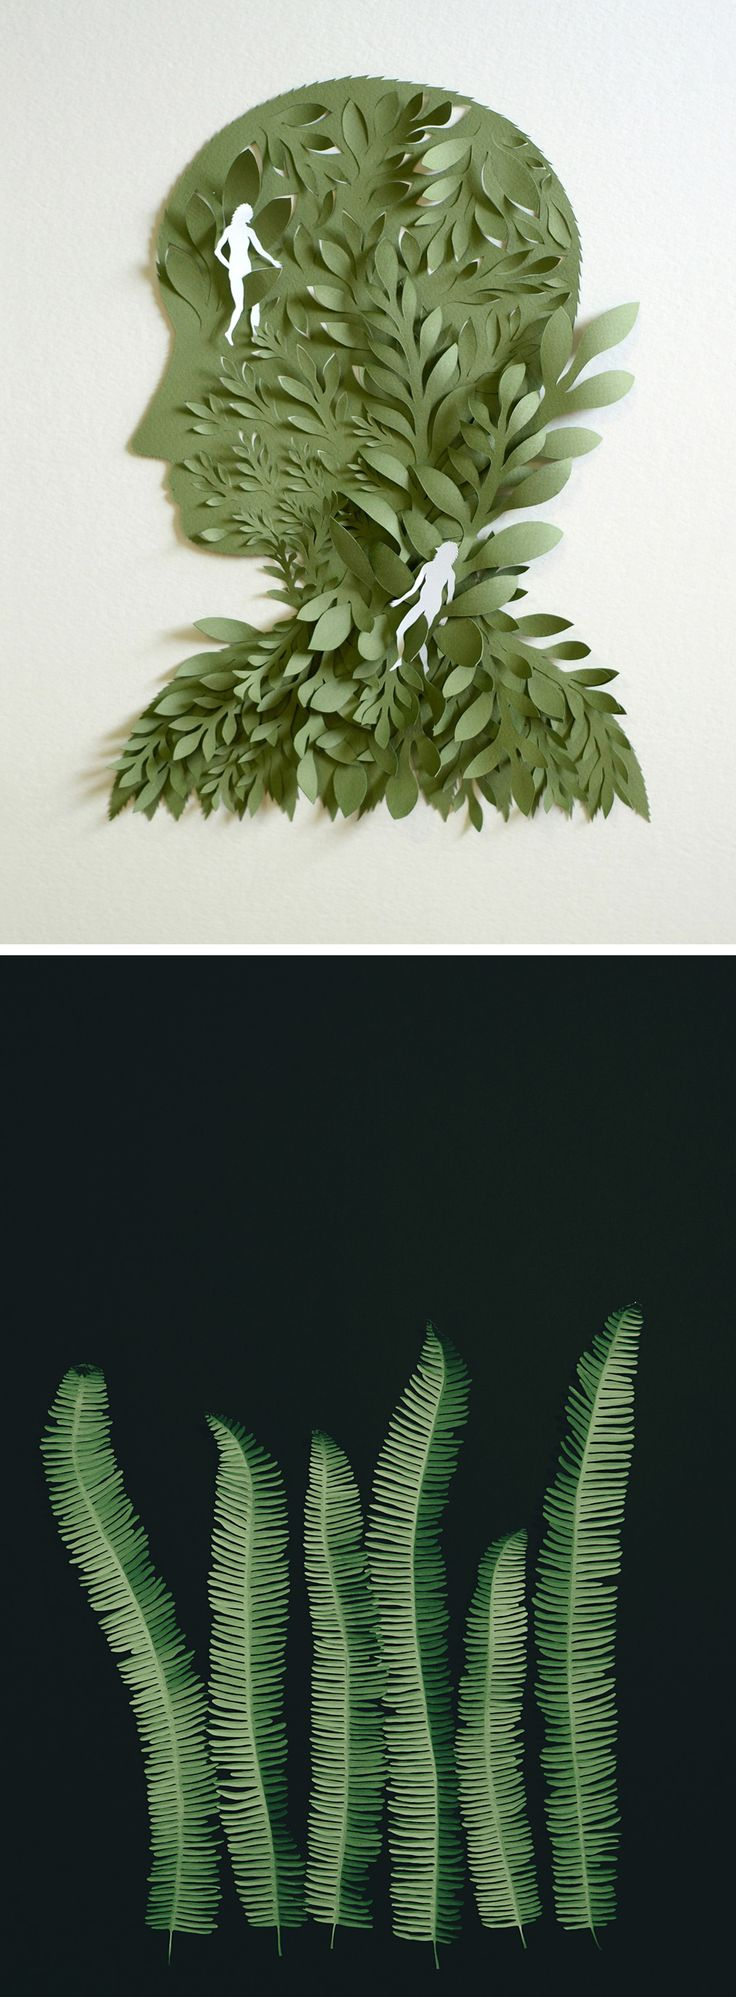 Paper illustration | cut paper art | paper craft | nature illustration